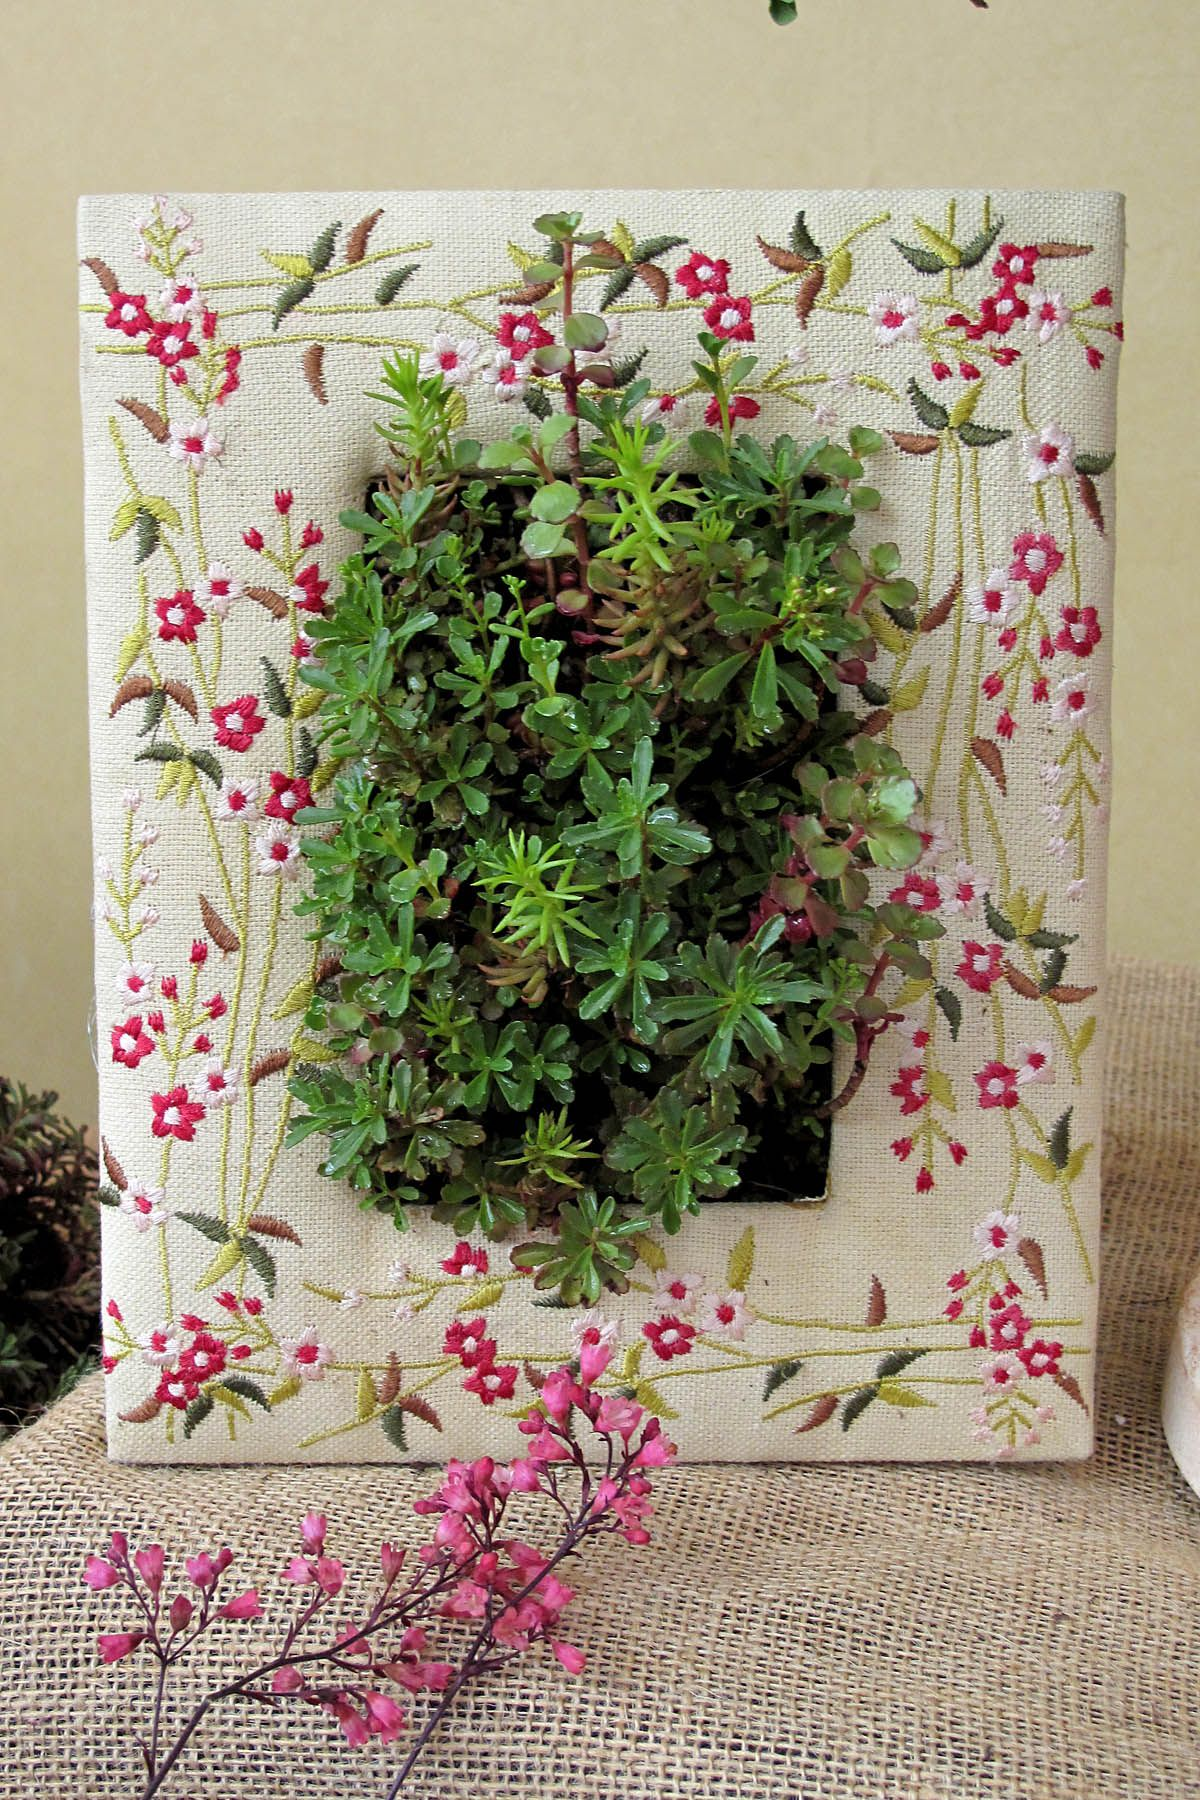 SedumSod in a picture frame Outdoor display table or hang Place